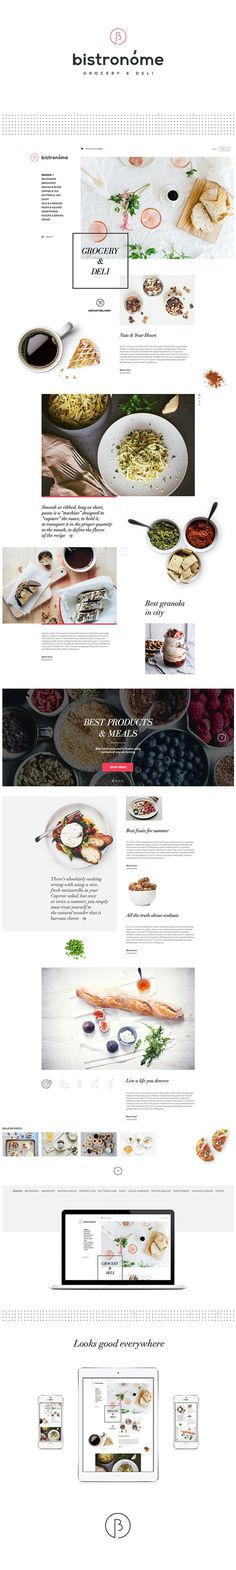 Bistronóme — Naming, Logotype & Website on Behance #restaurant #webpage